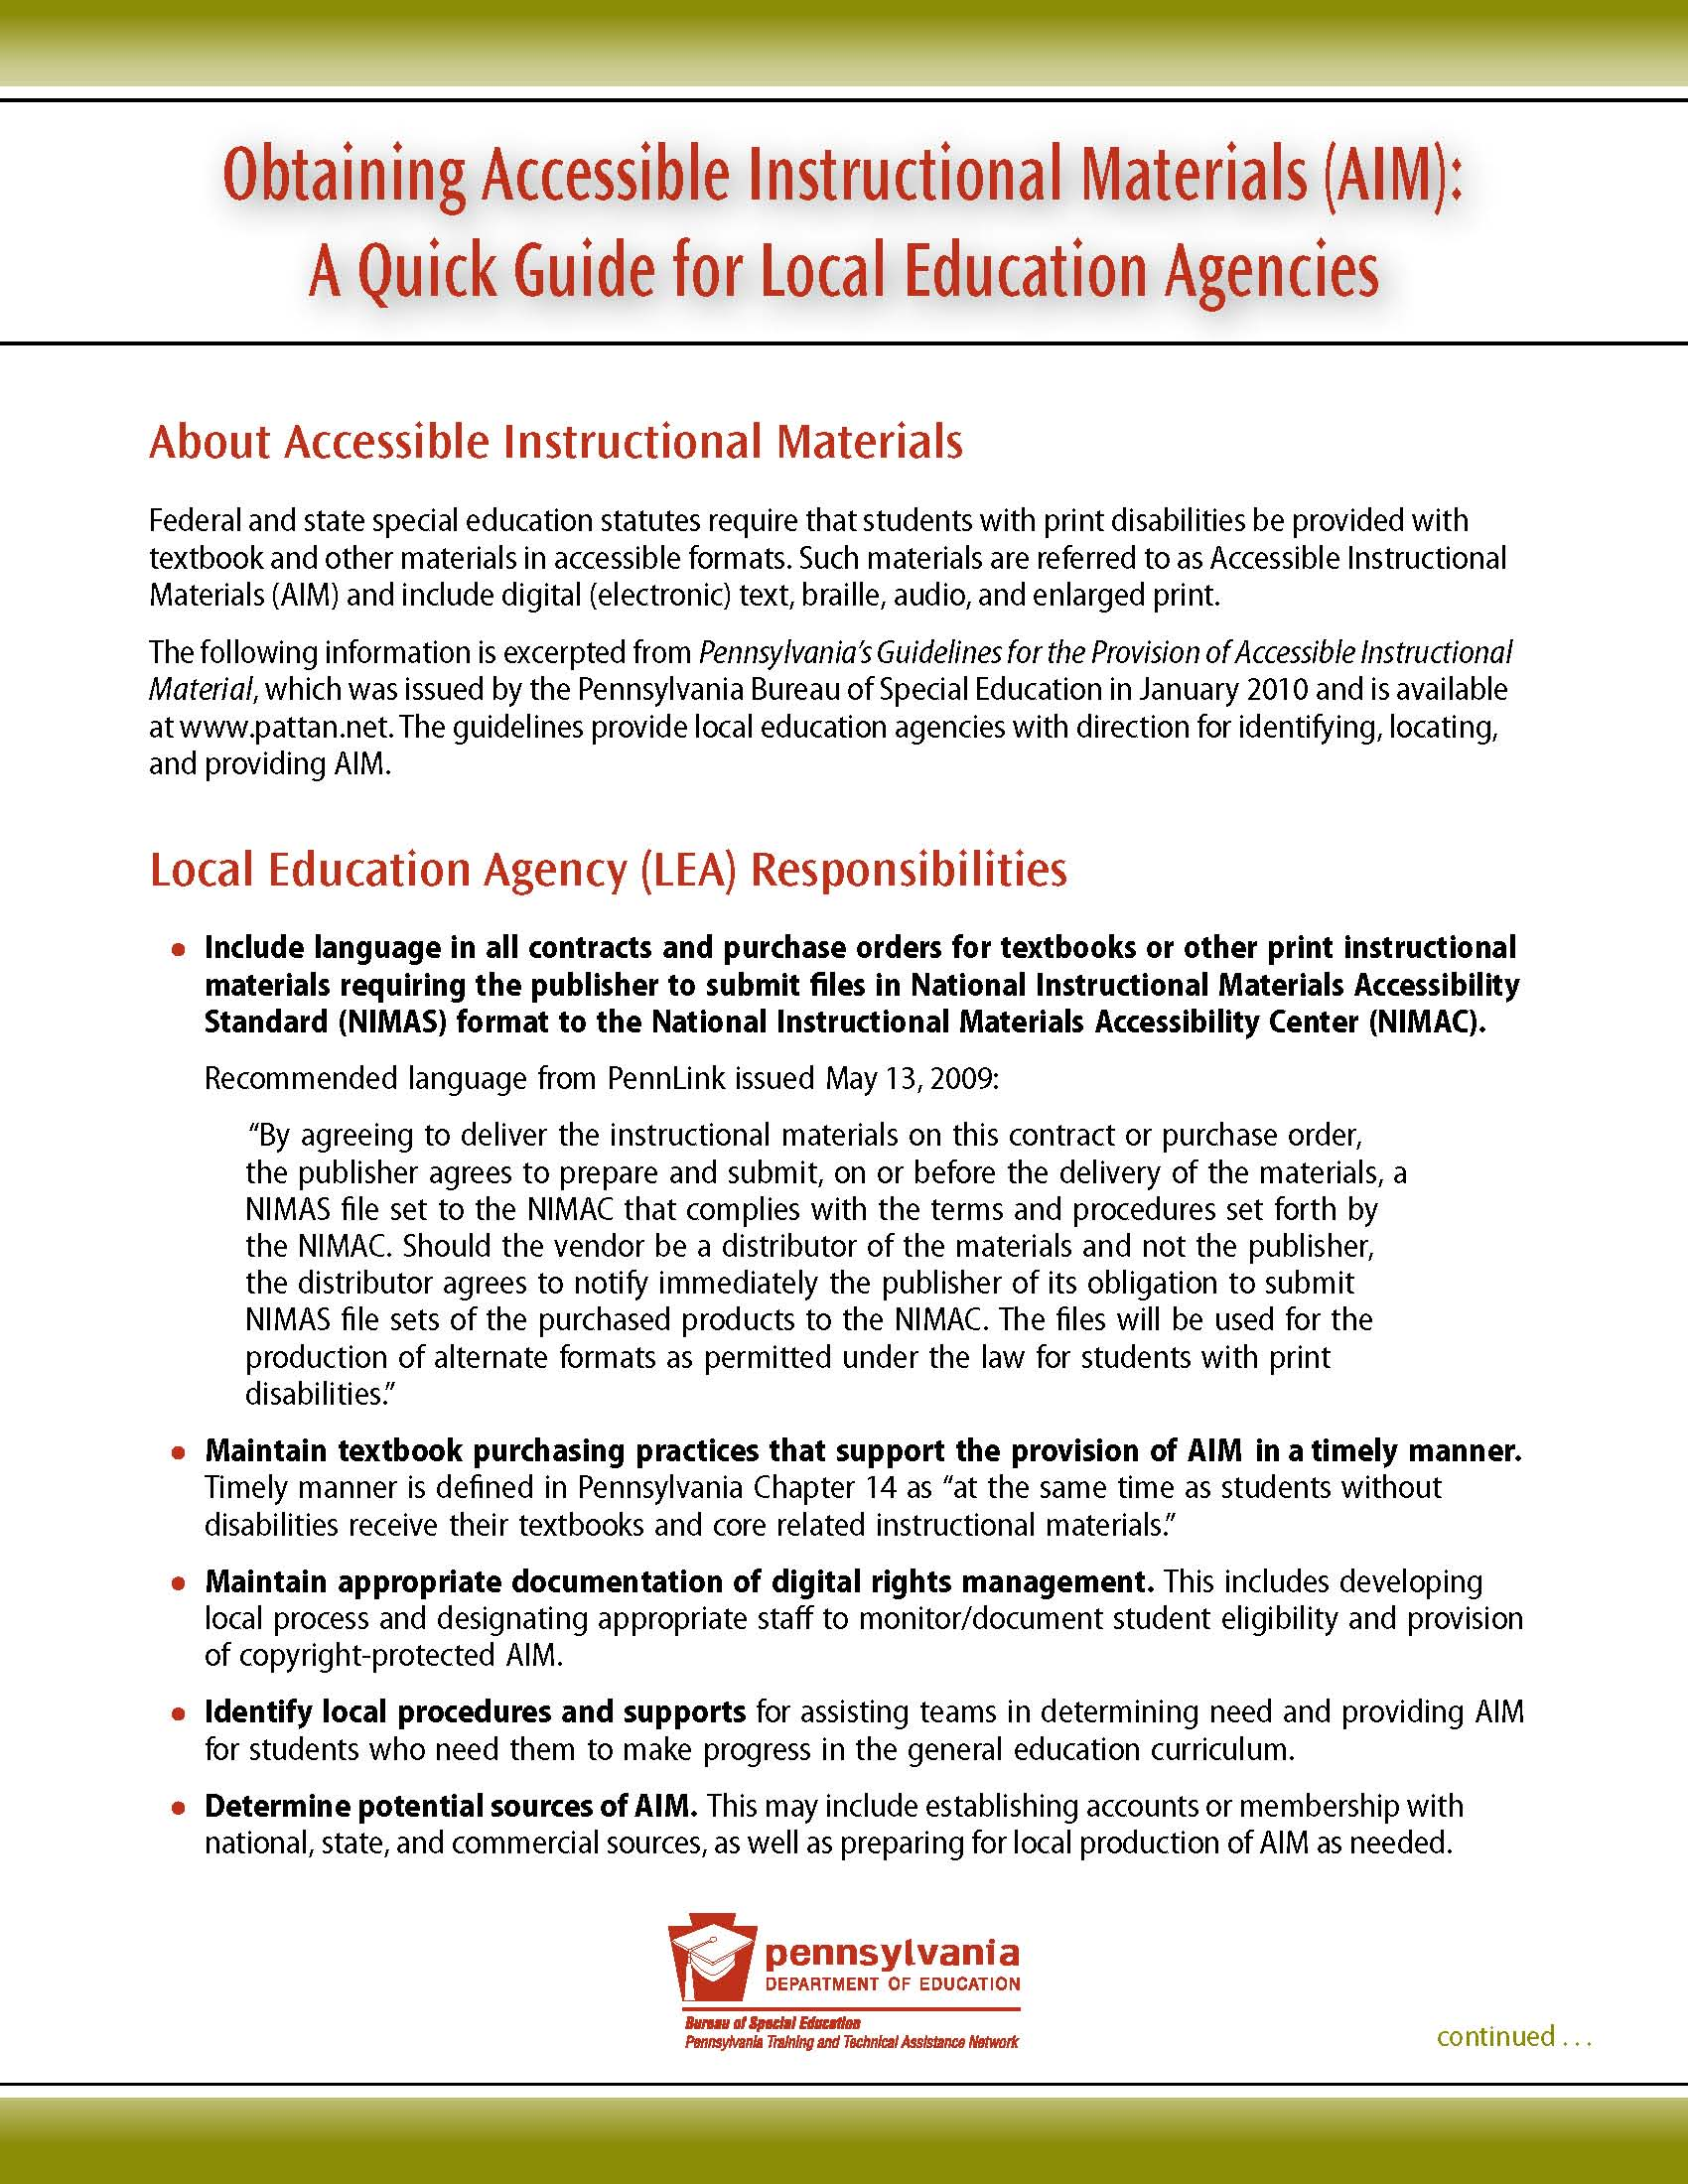 Obtaining Accessible Instructional Materials (AIM): A Quick Guide for Local Education Agencies